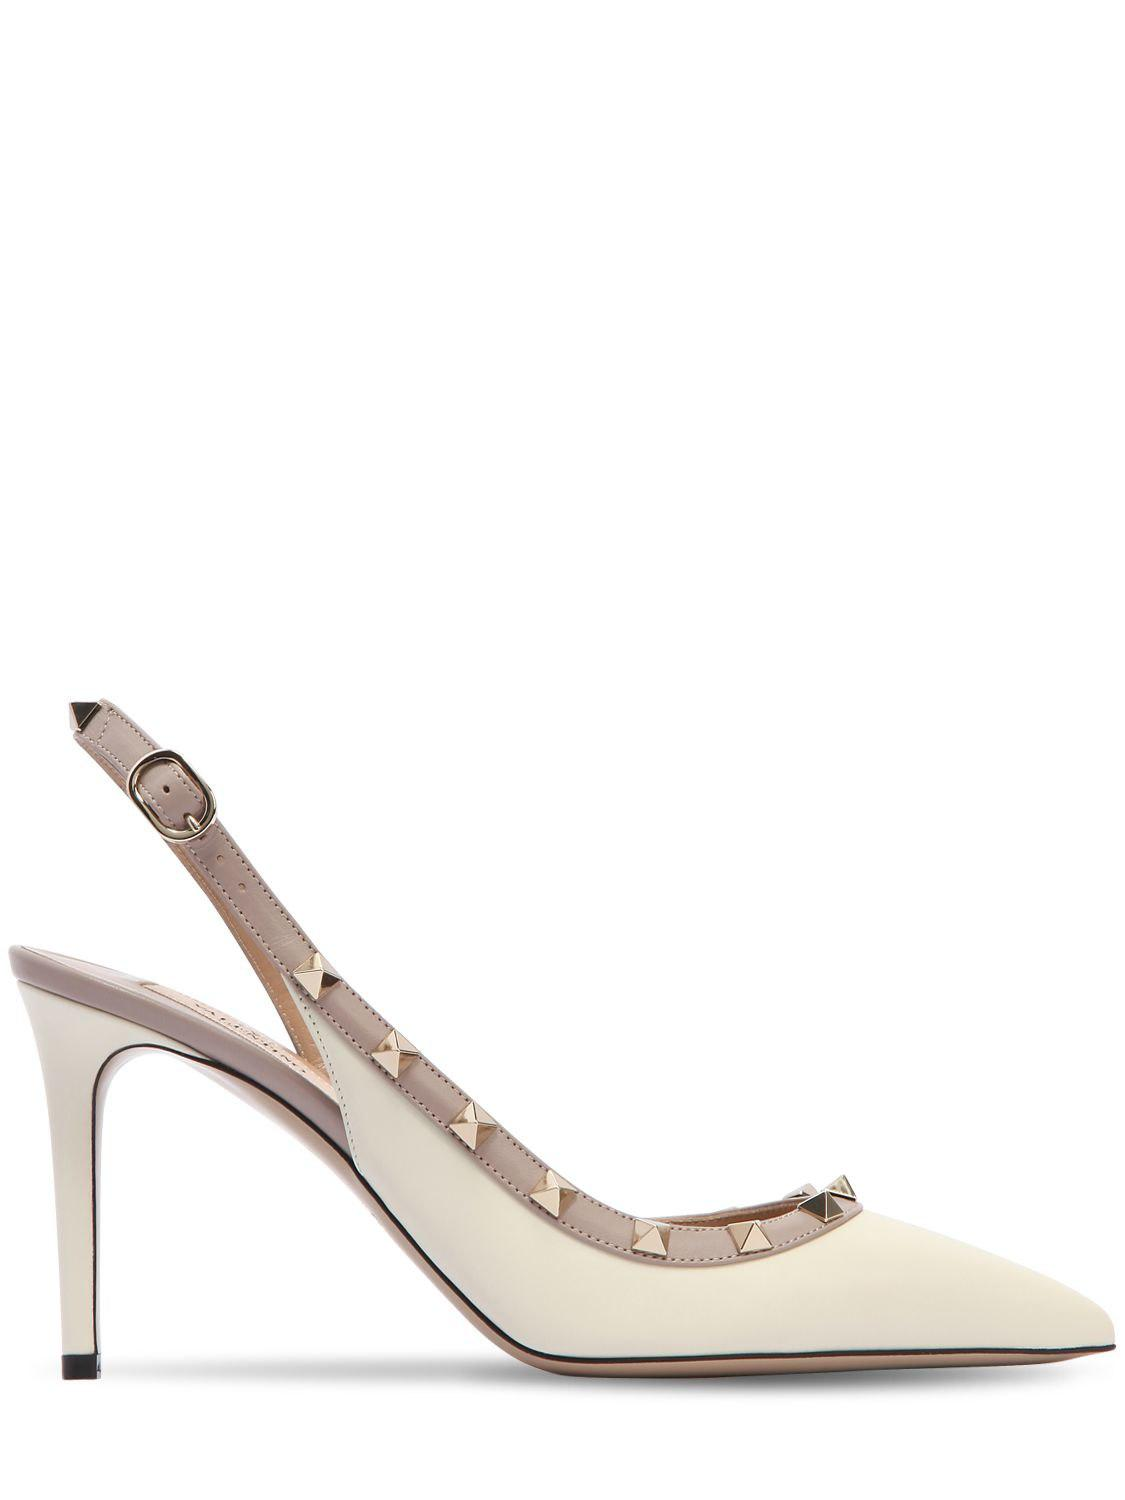 80c6c003aa0 Lyst - Valentino 85mm Rockstud Leather Slingback Pumps in White